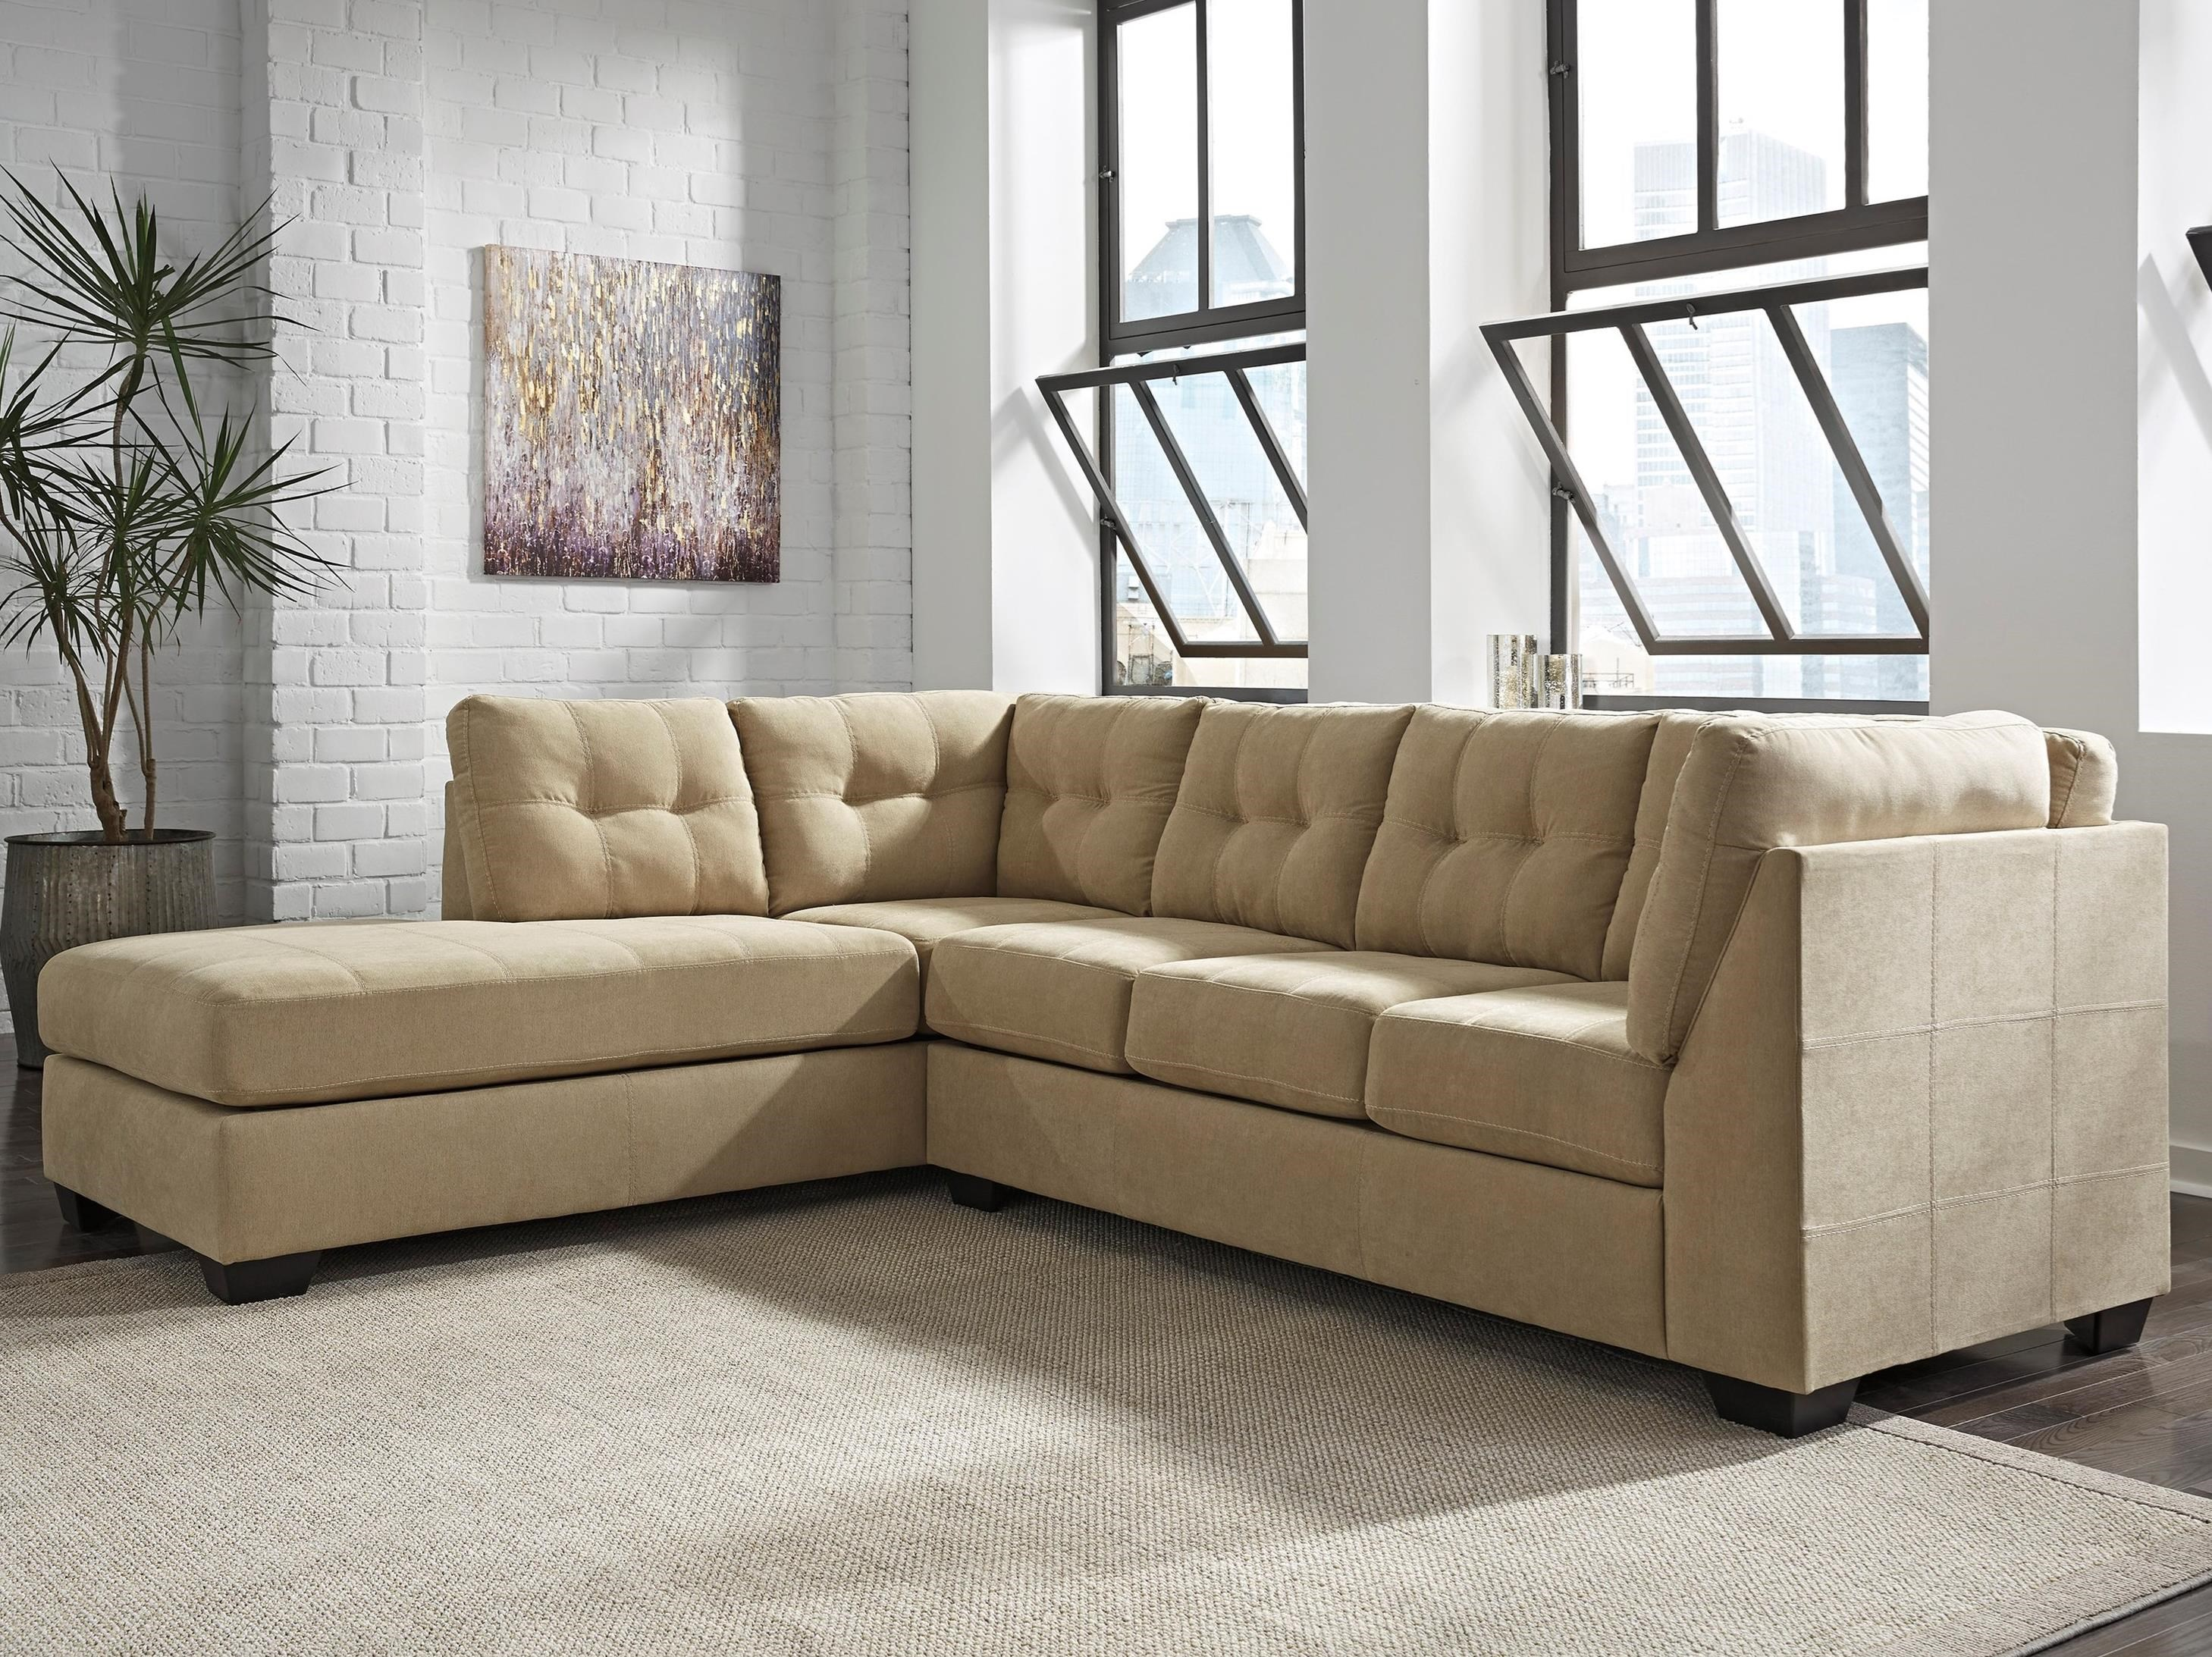 Benchcraft maier cocoa 2 piece sectional with left for Ashley furniture chaise couch